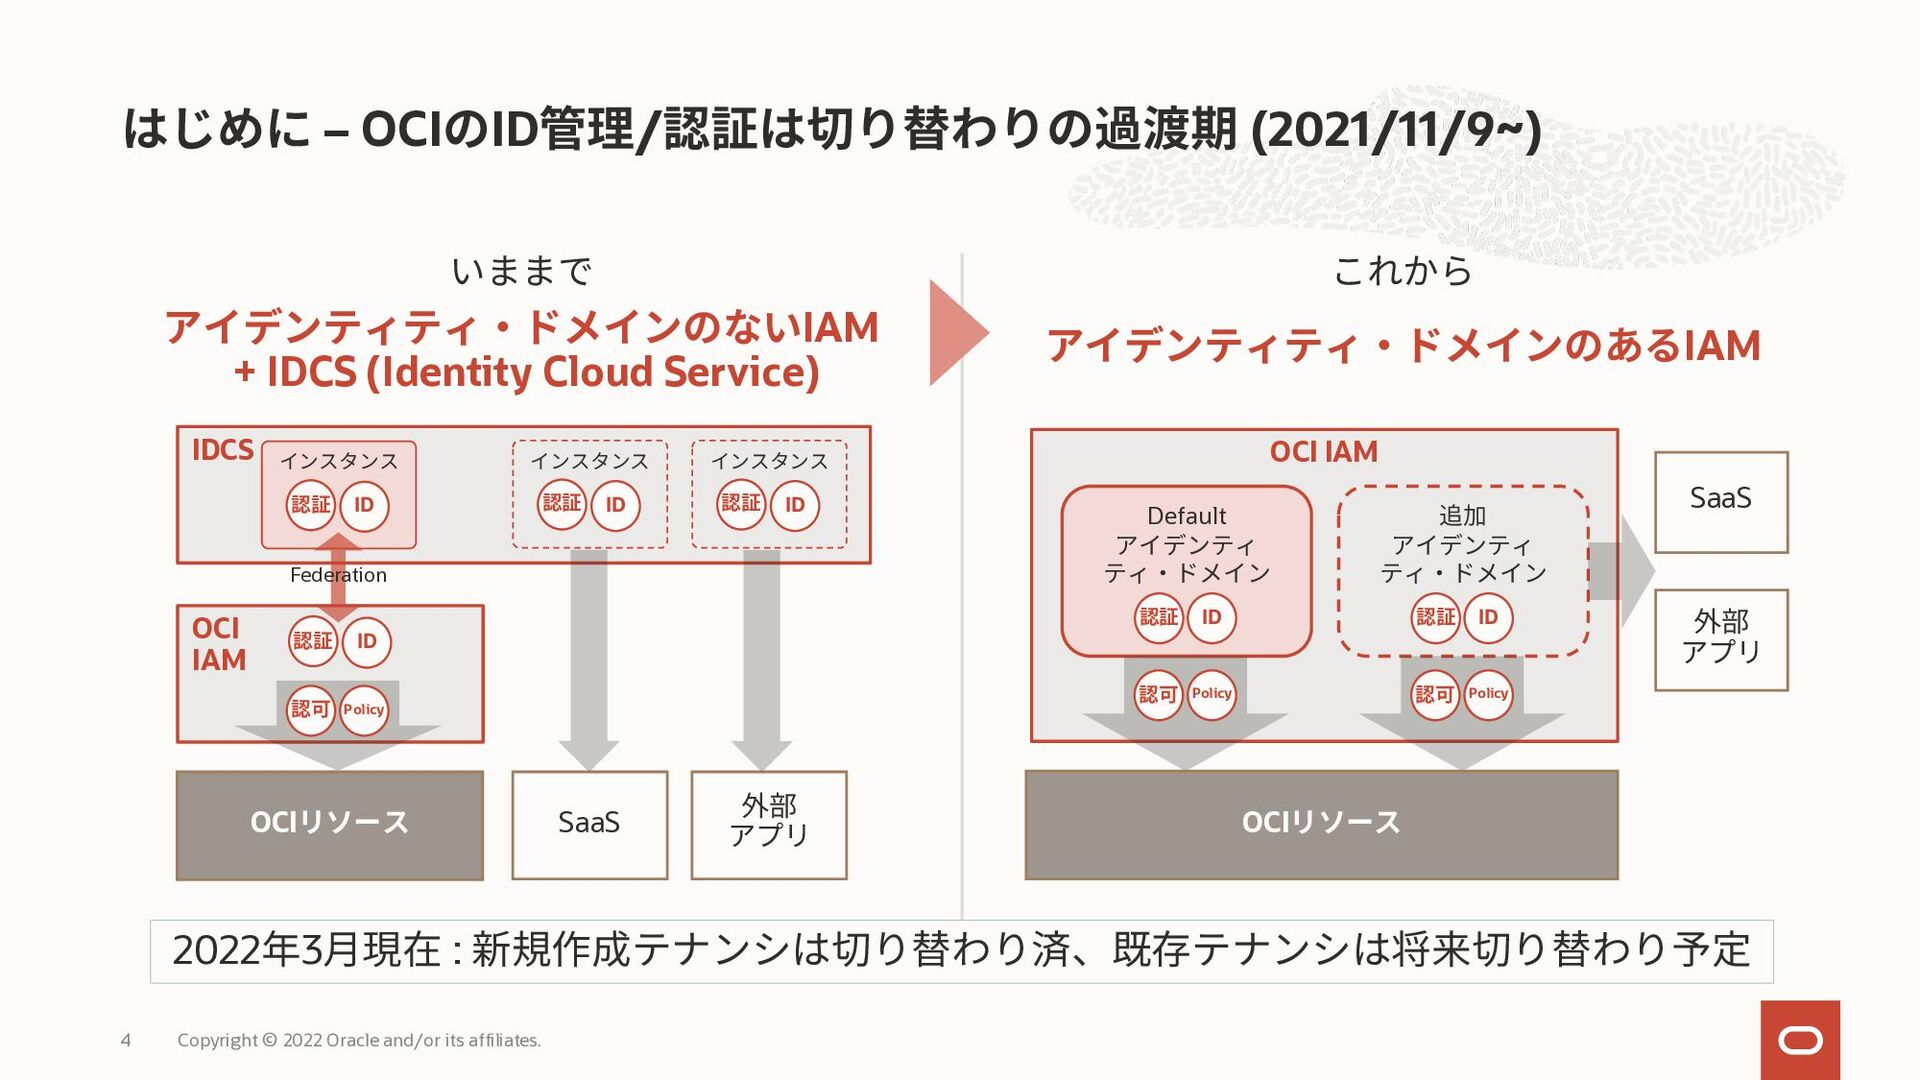 OCI IAMトレーニングの全体像 Copyright © 2021 Oracle and/o...